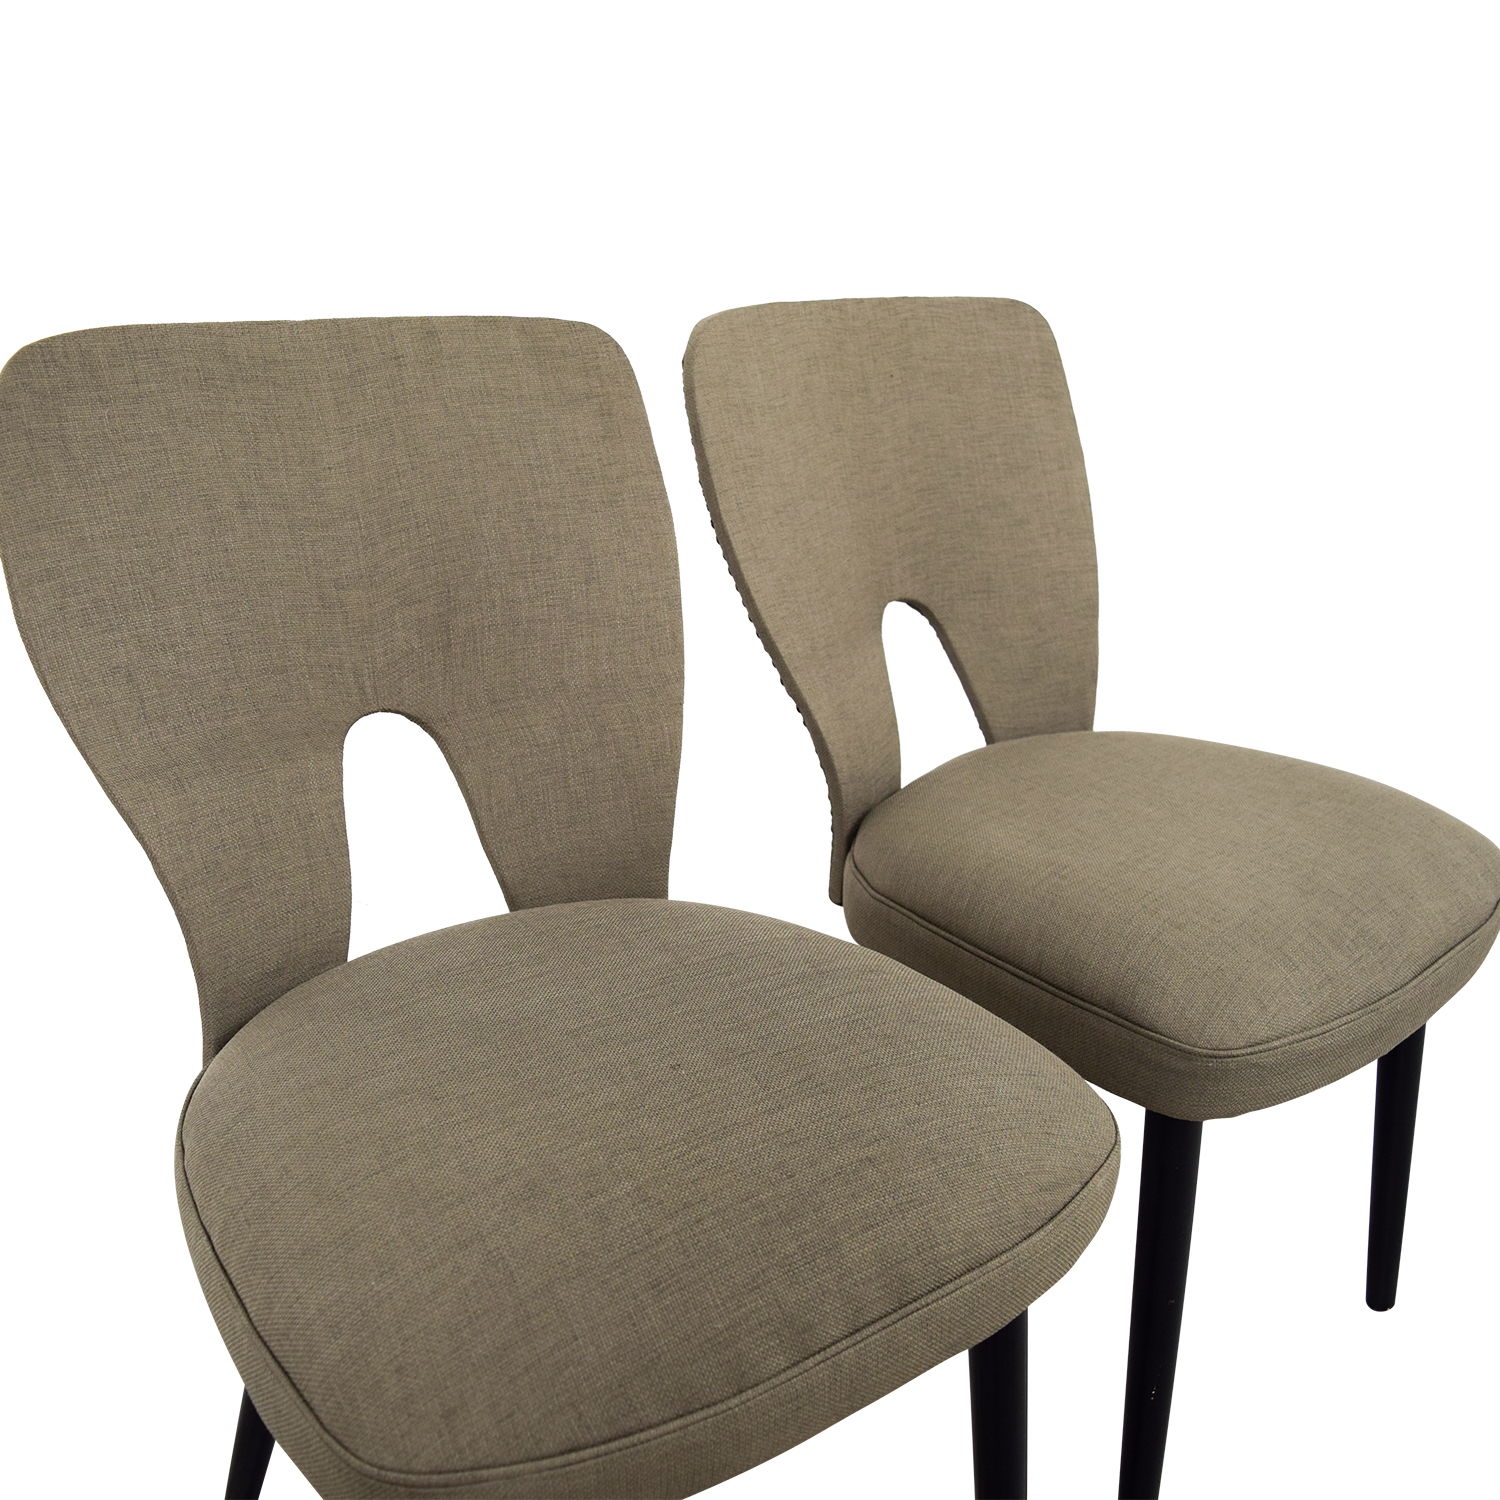 62 off wayfair wayfair upholstered beige dining chairs for Wayfair furniture dining tables